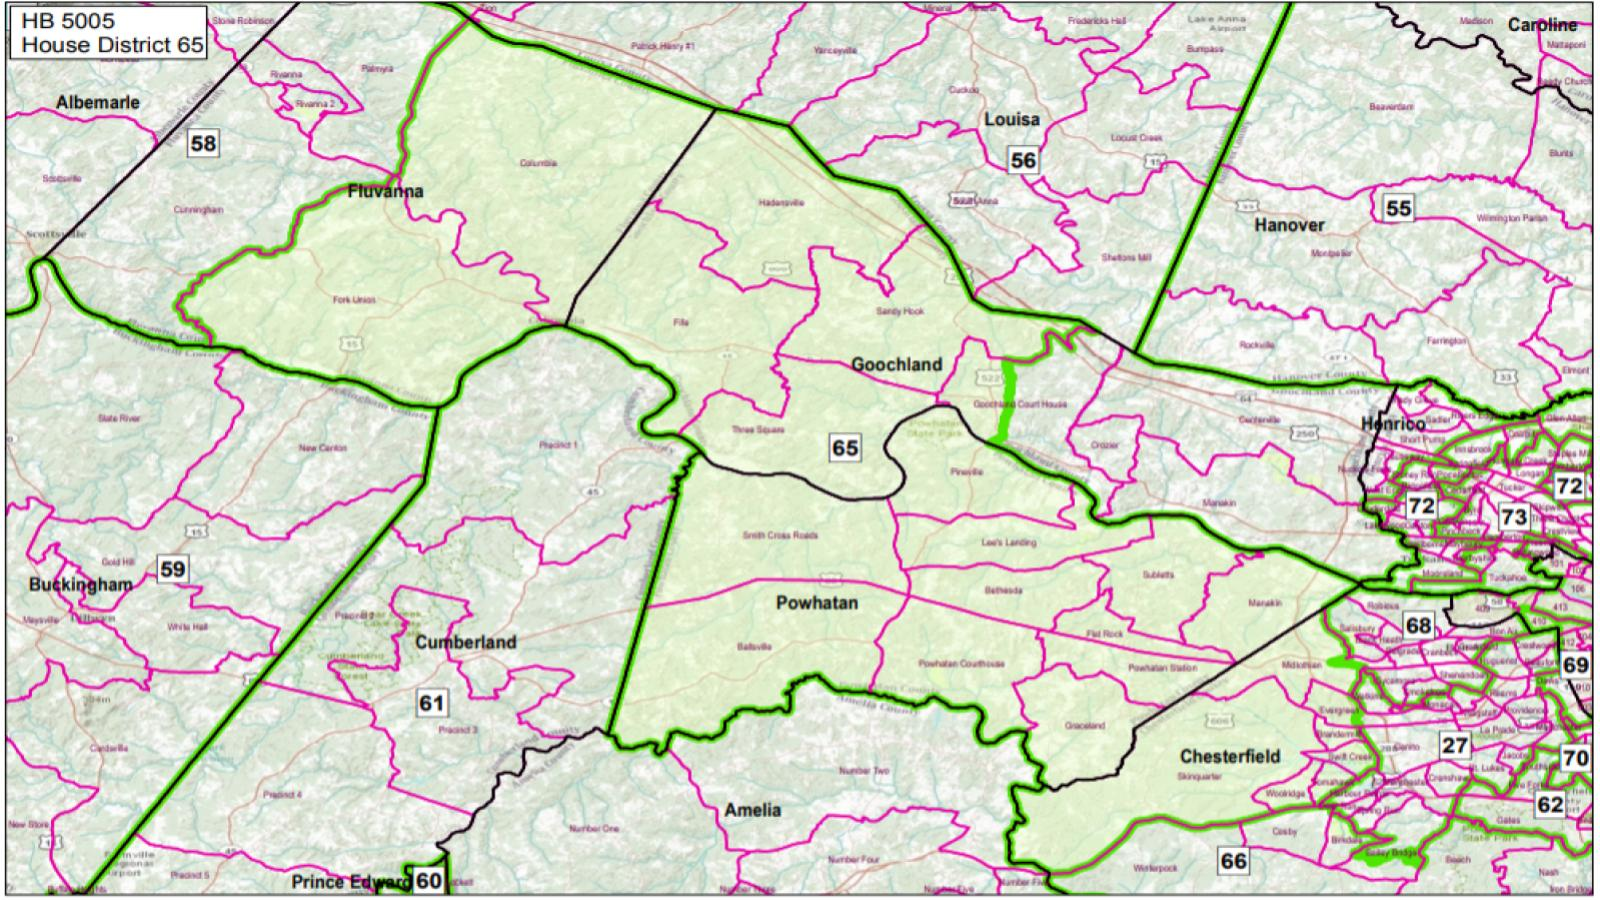 VA State House District #65